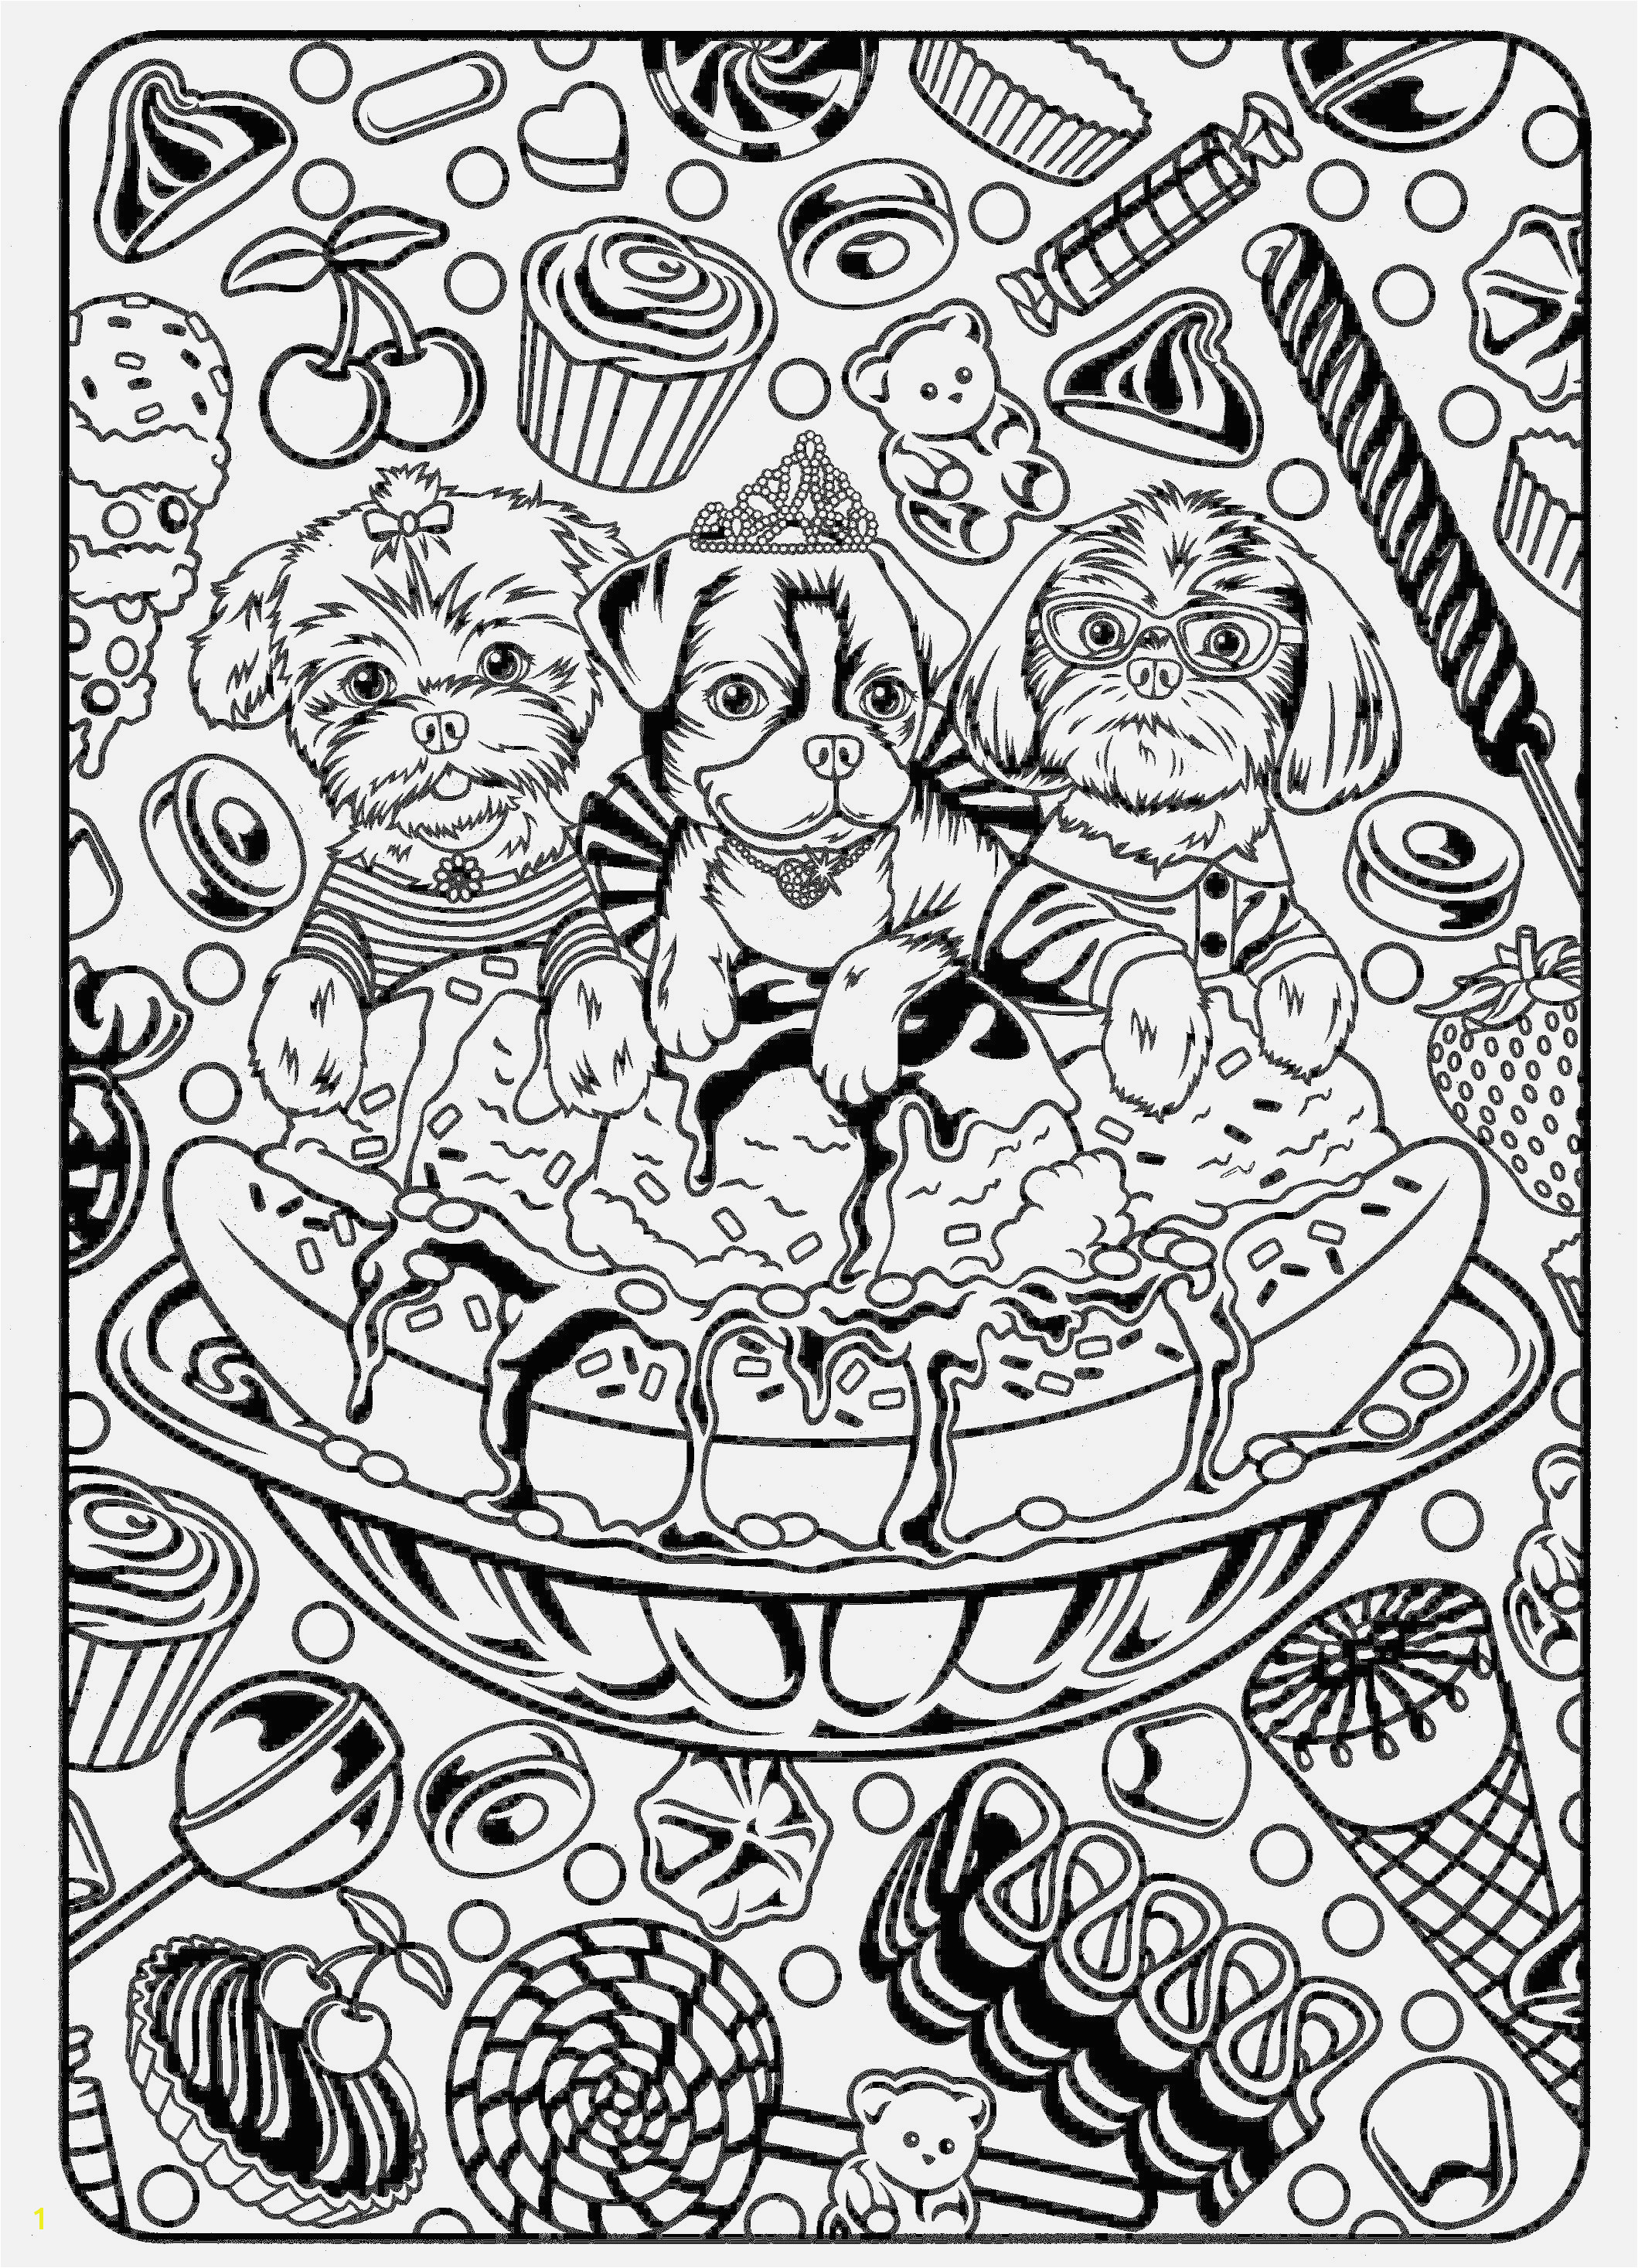 Parrot Coloring Pages Printable 32 New Coloring Page to Print Cloud9vegas Parrot Coloring Pages Free